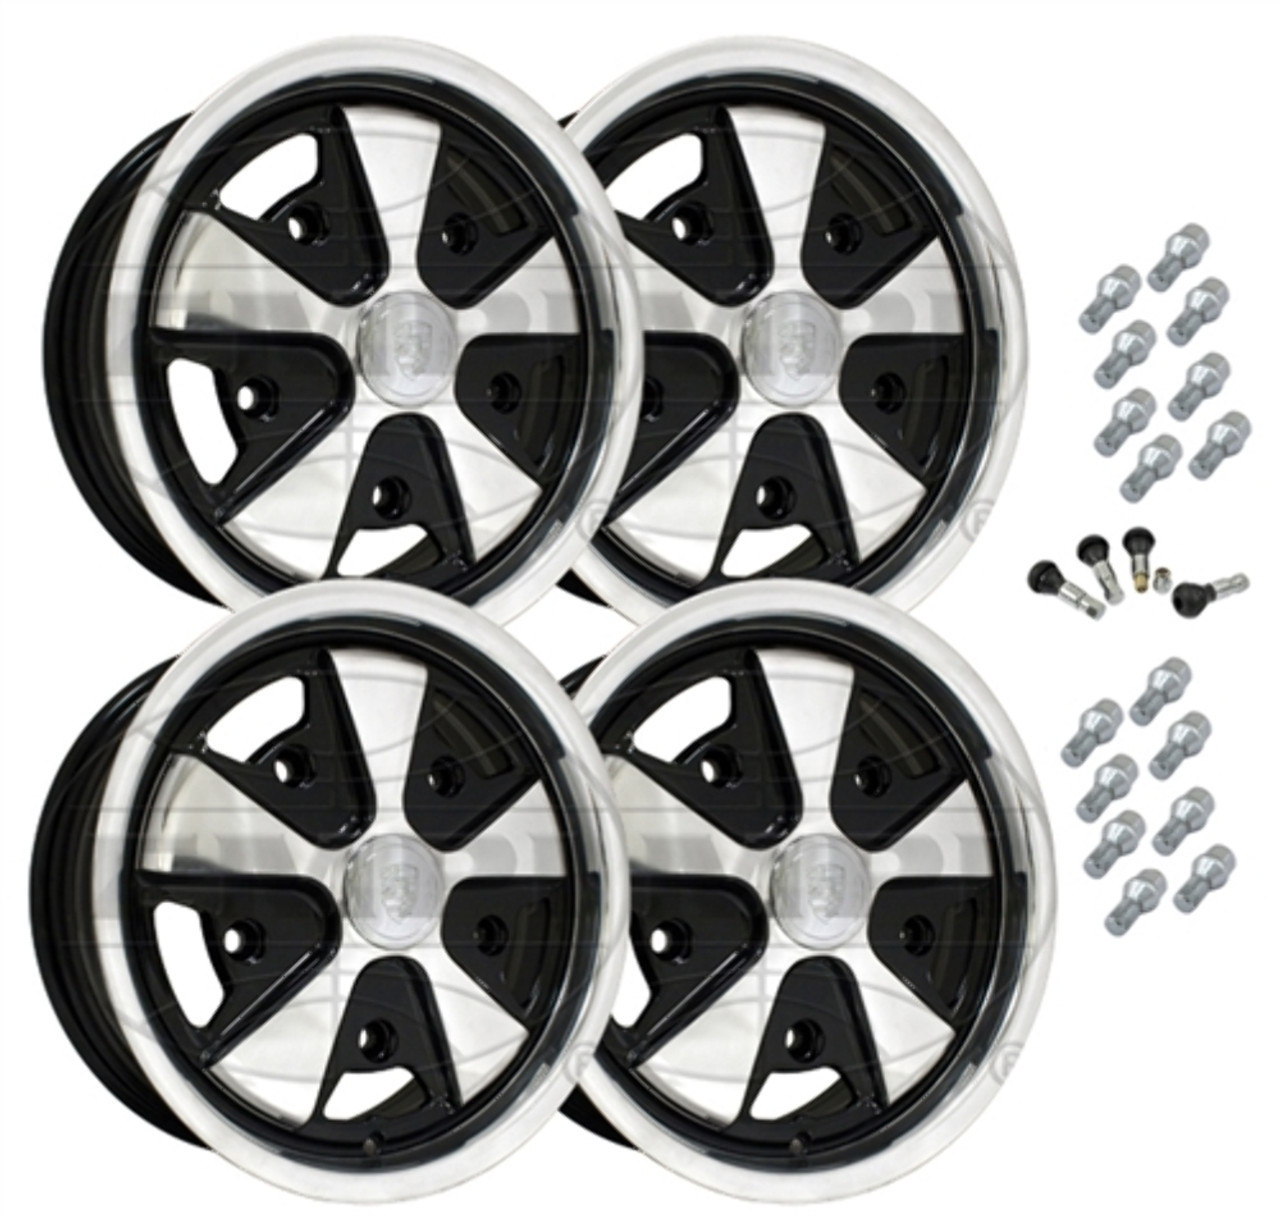 10-1110 EMPI 911 STYLE WHEEL PACKAGE, 5-LUG VW BUG, BUS, GHIA, TYPE 3,  4PC SET, BLACK, 15 X 5-1/2, 5 ON 205MM